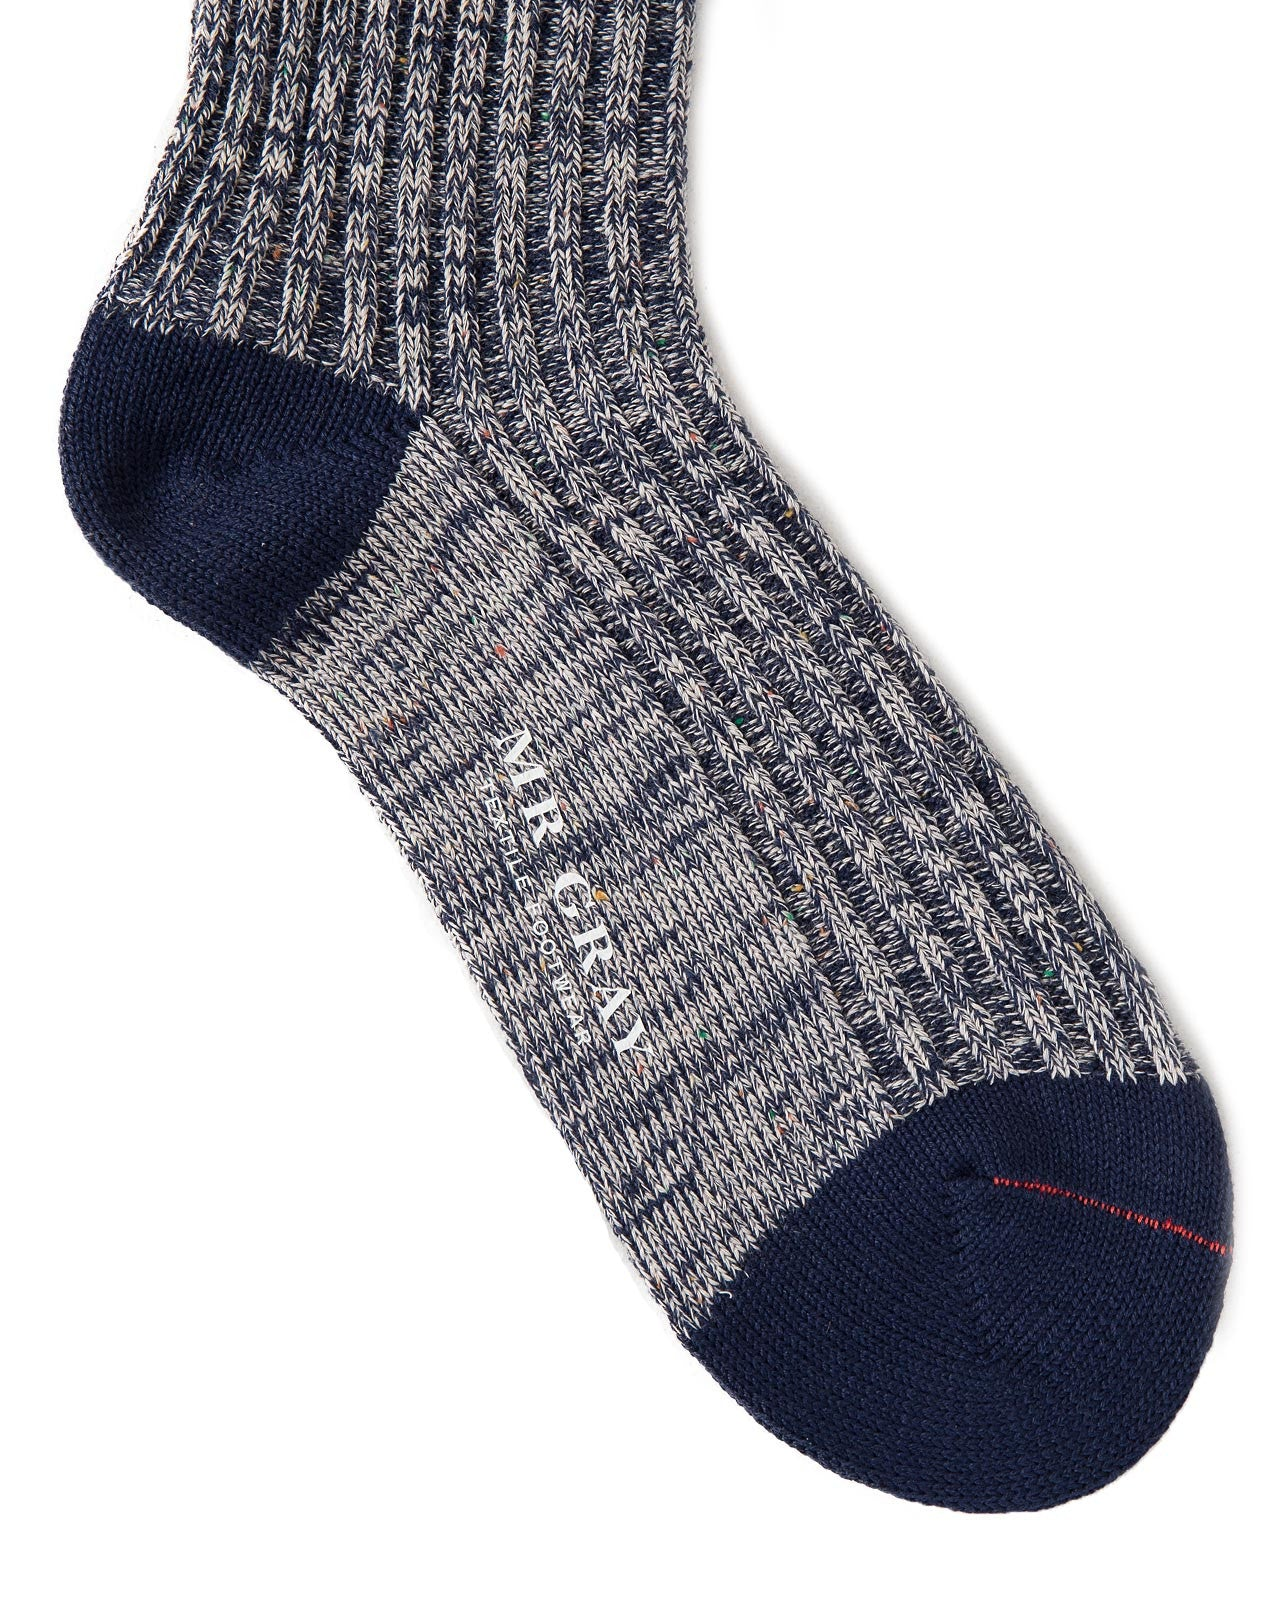 Heavy Nep Rib Sock in Navy | Mr. Gray